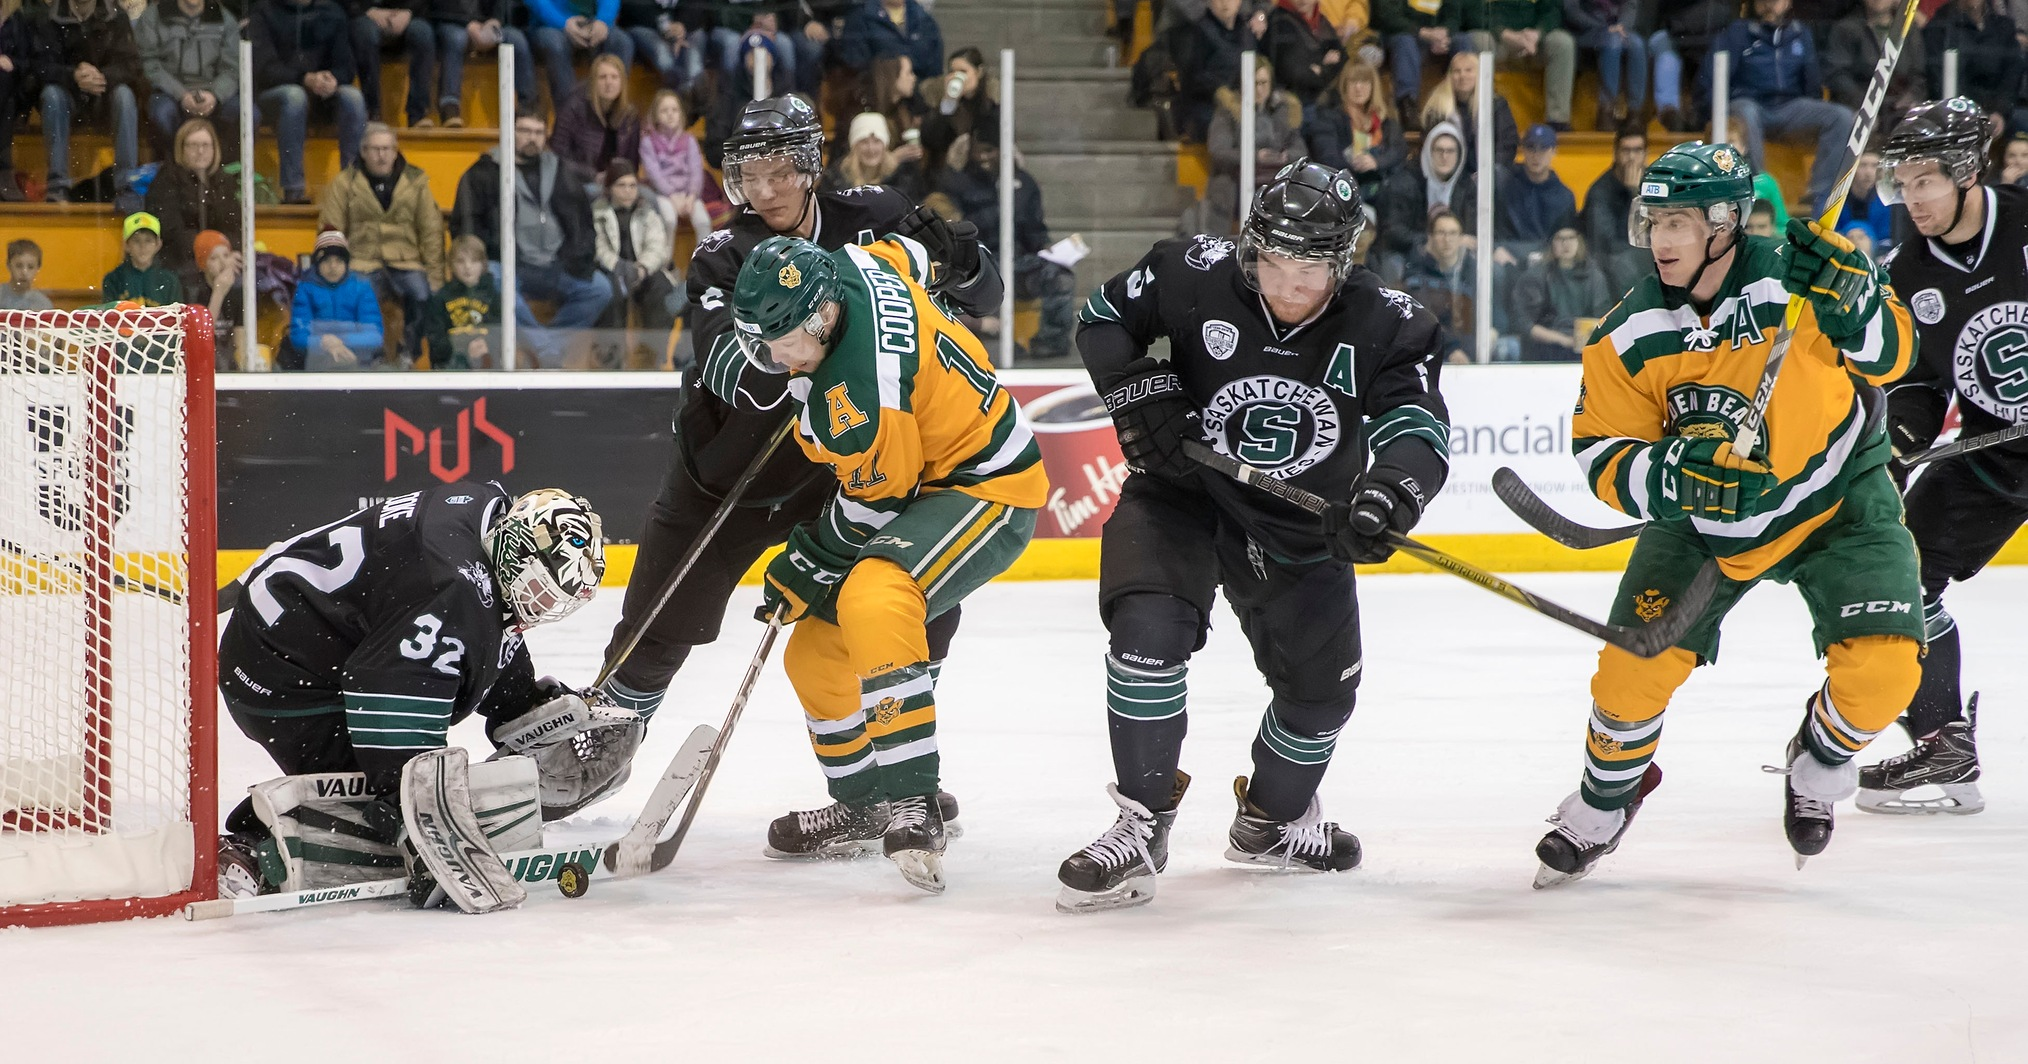 Men's hockey swept by Golden Bears in Edmonton